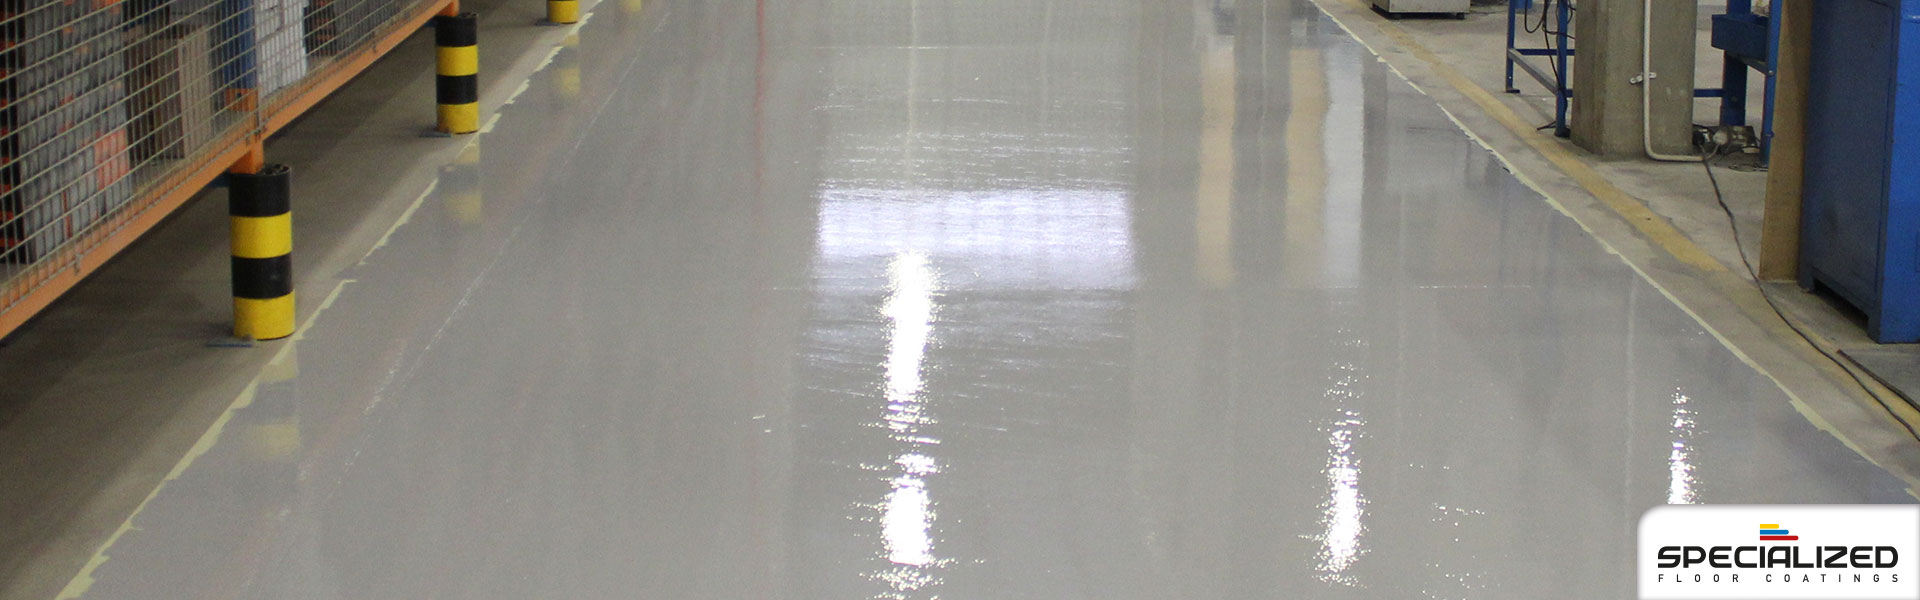 Floor Coatings image